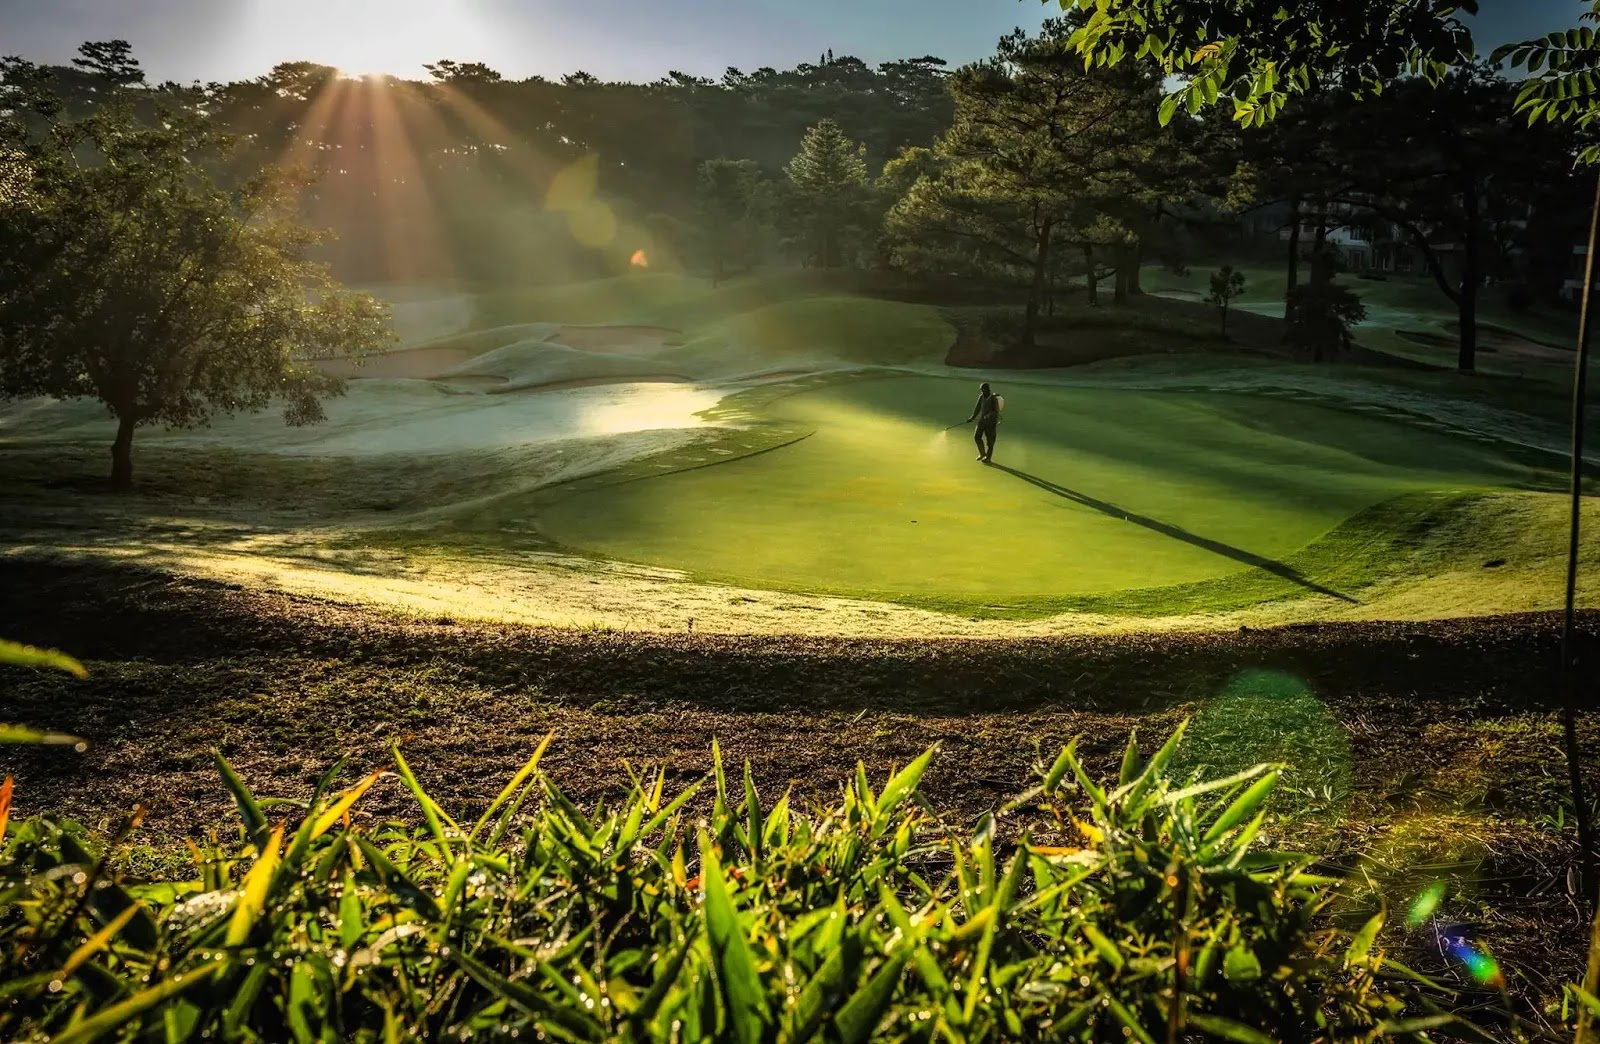 One Morning Baguio City Private Golf Course Cordillera Administrative Region Philippines